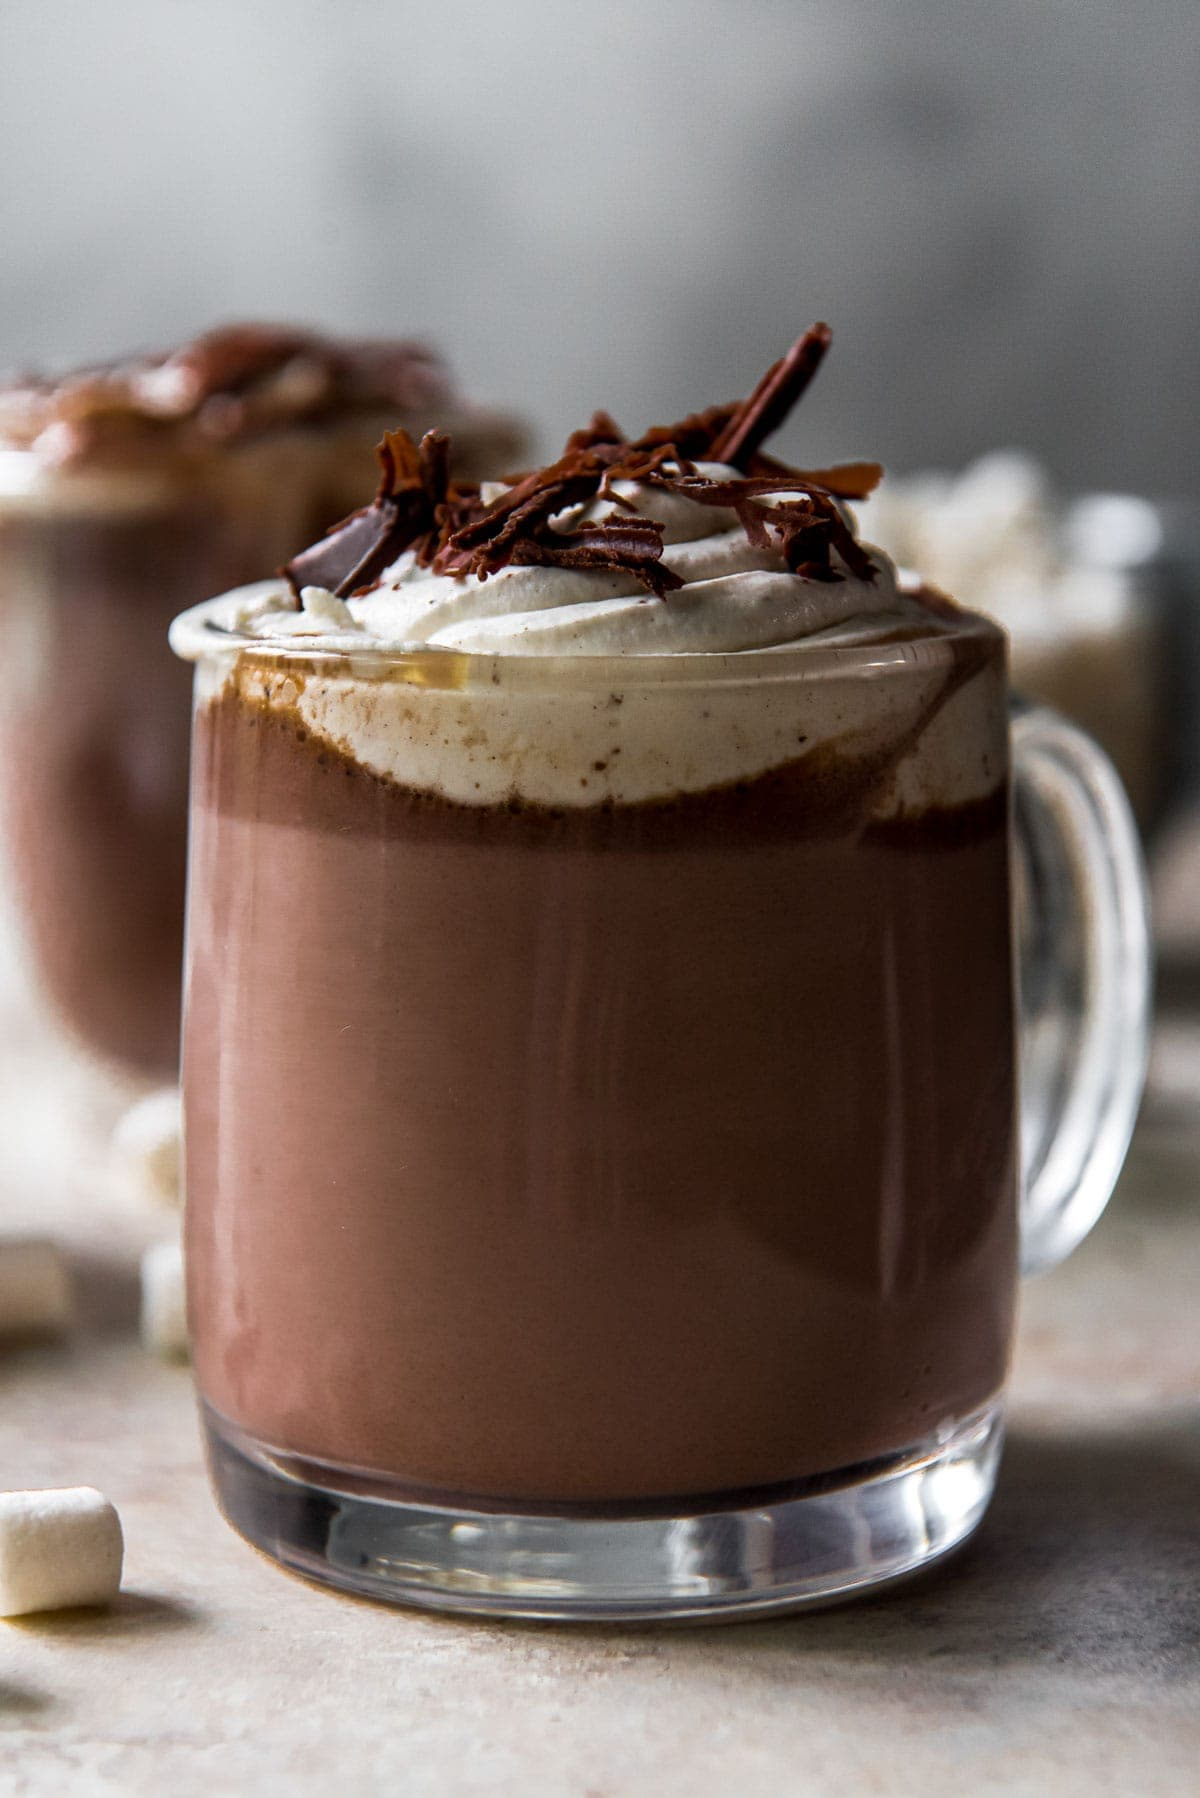 hot chocolate in clear glasses, whipped cream, chocolate shavings, marshmallows